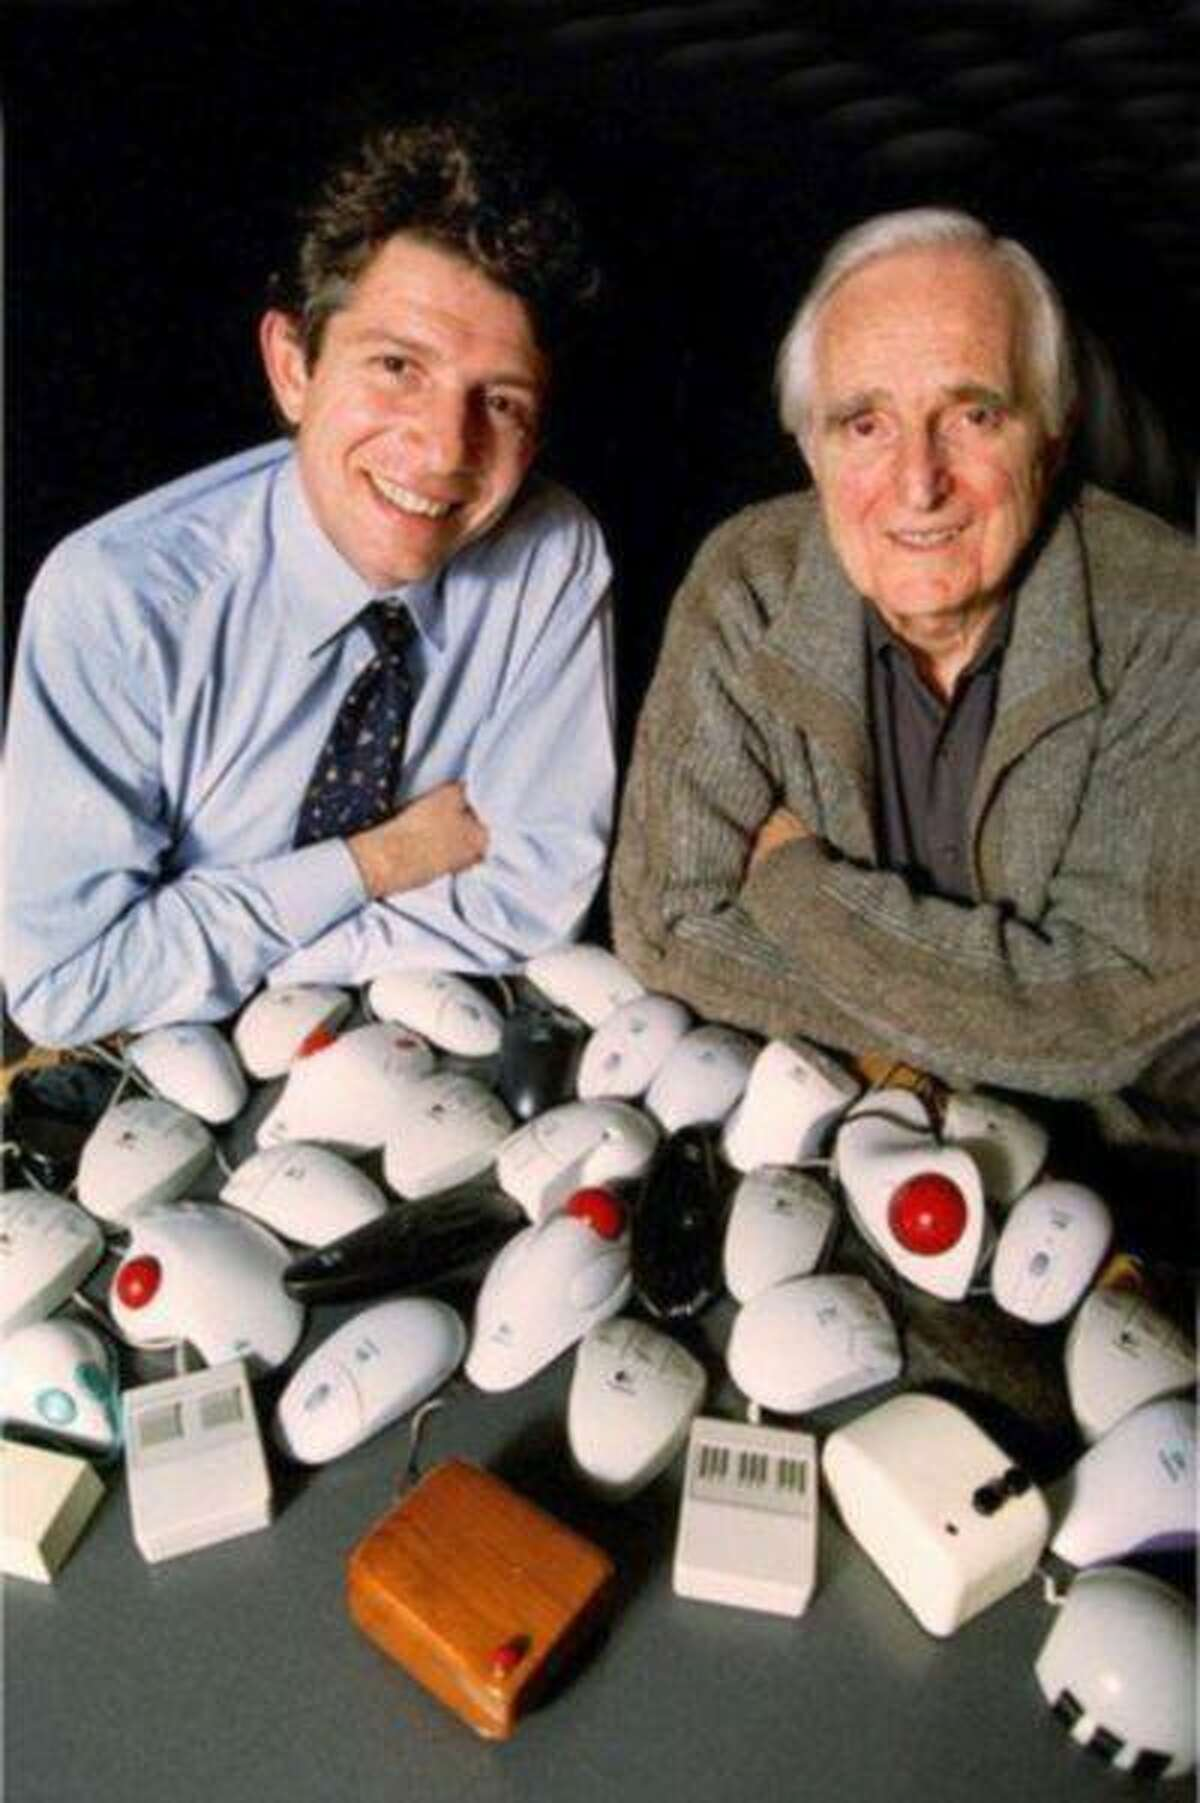 SO.Mouse30th.1207.HODoug Engelbart (right), inventoer of the computer mouse and Guerrino De Luca, president and CEO of Logitech, the world's largest mouse manufacturer, with the original wooden mouse and an array of newer versions of the mouse. The computer mouse celebrates its 30th birthday on 12/9/98.Photo/Art by:Handout